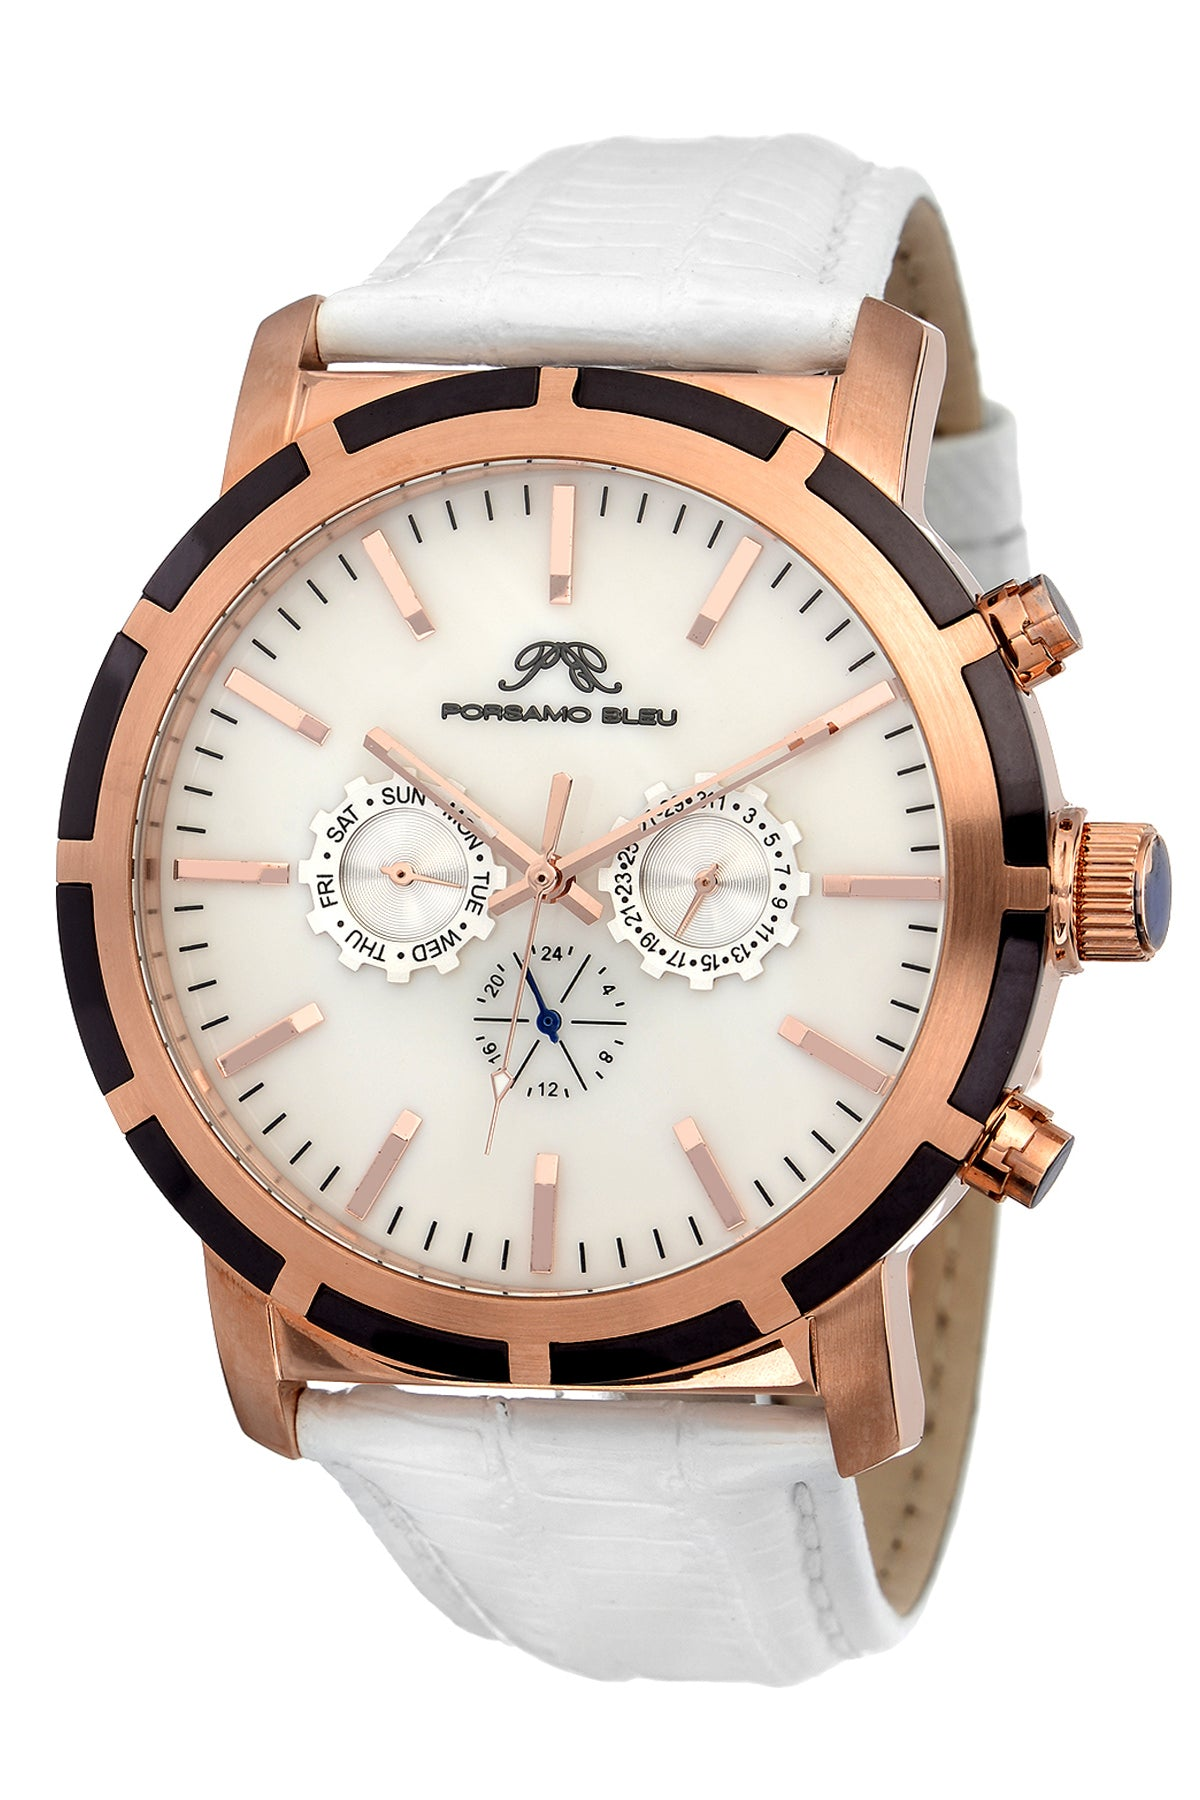 Porsamo Bleu NYC luxury men's watch, genuine leather band, rose, white 052ANYL